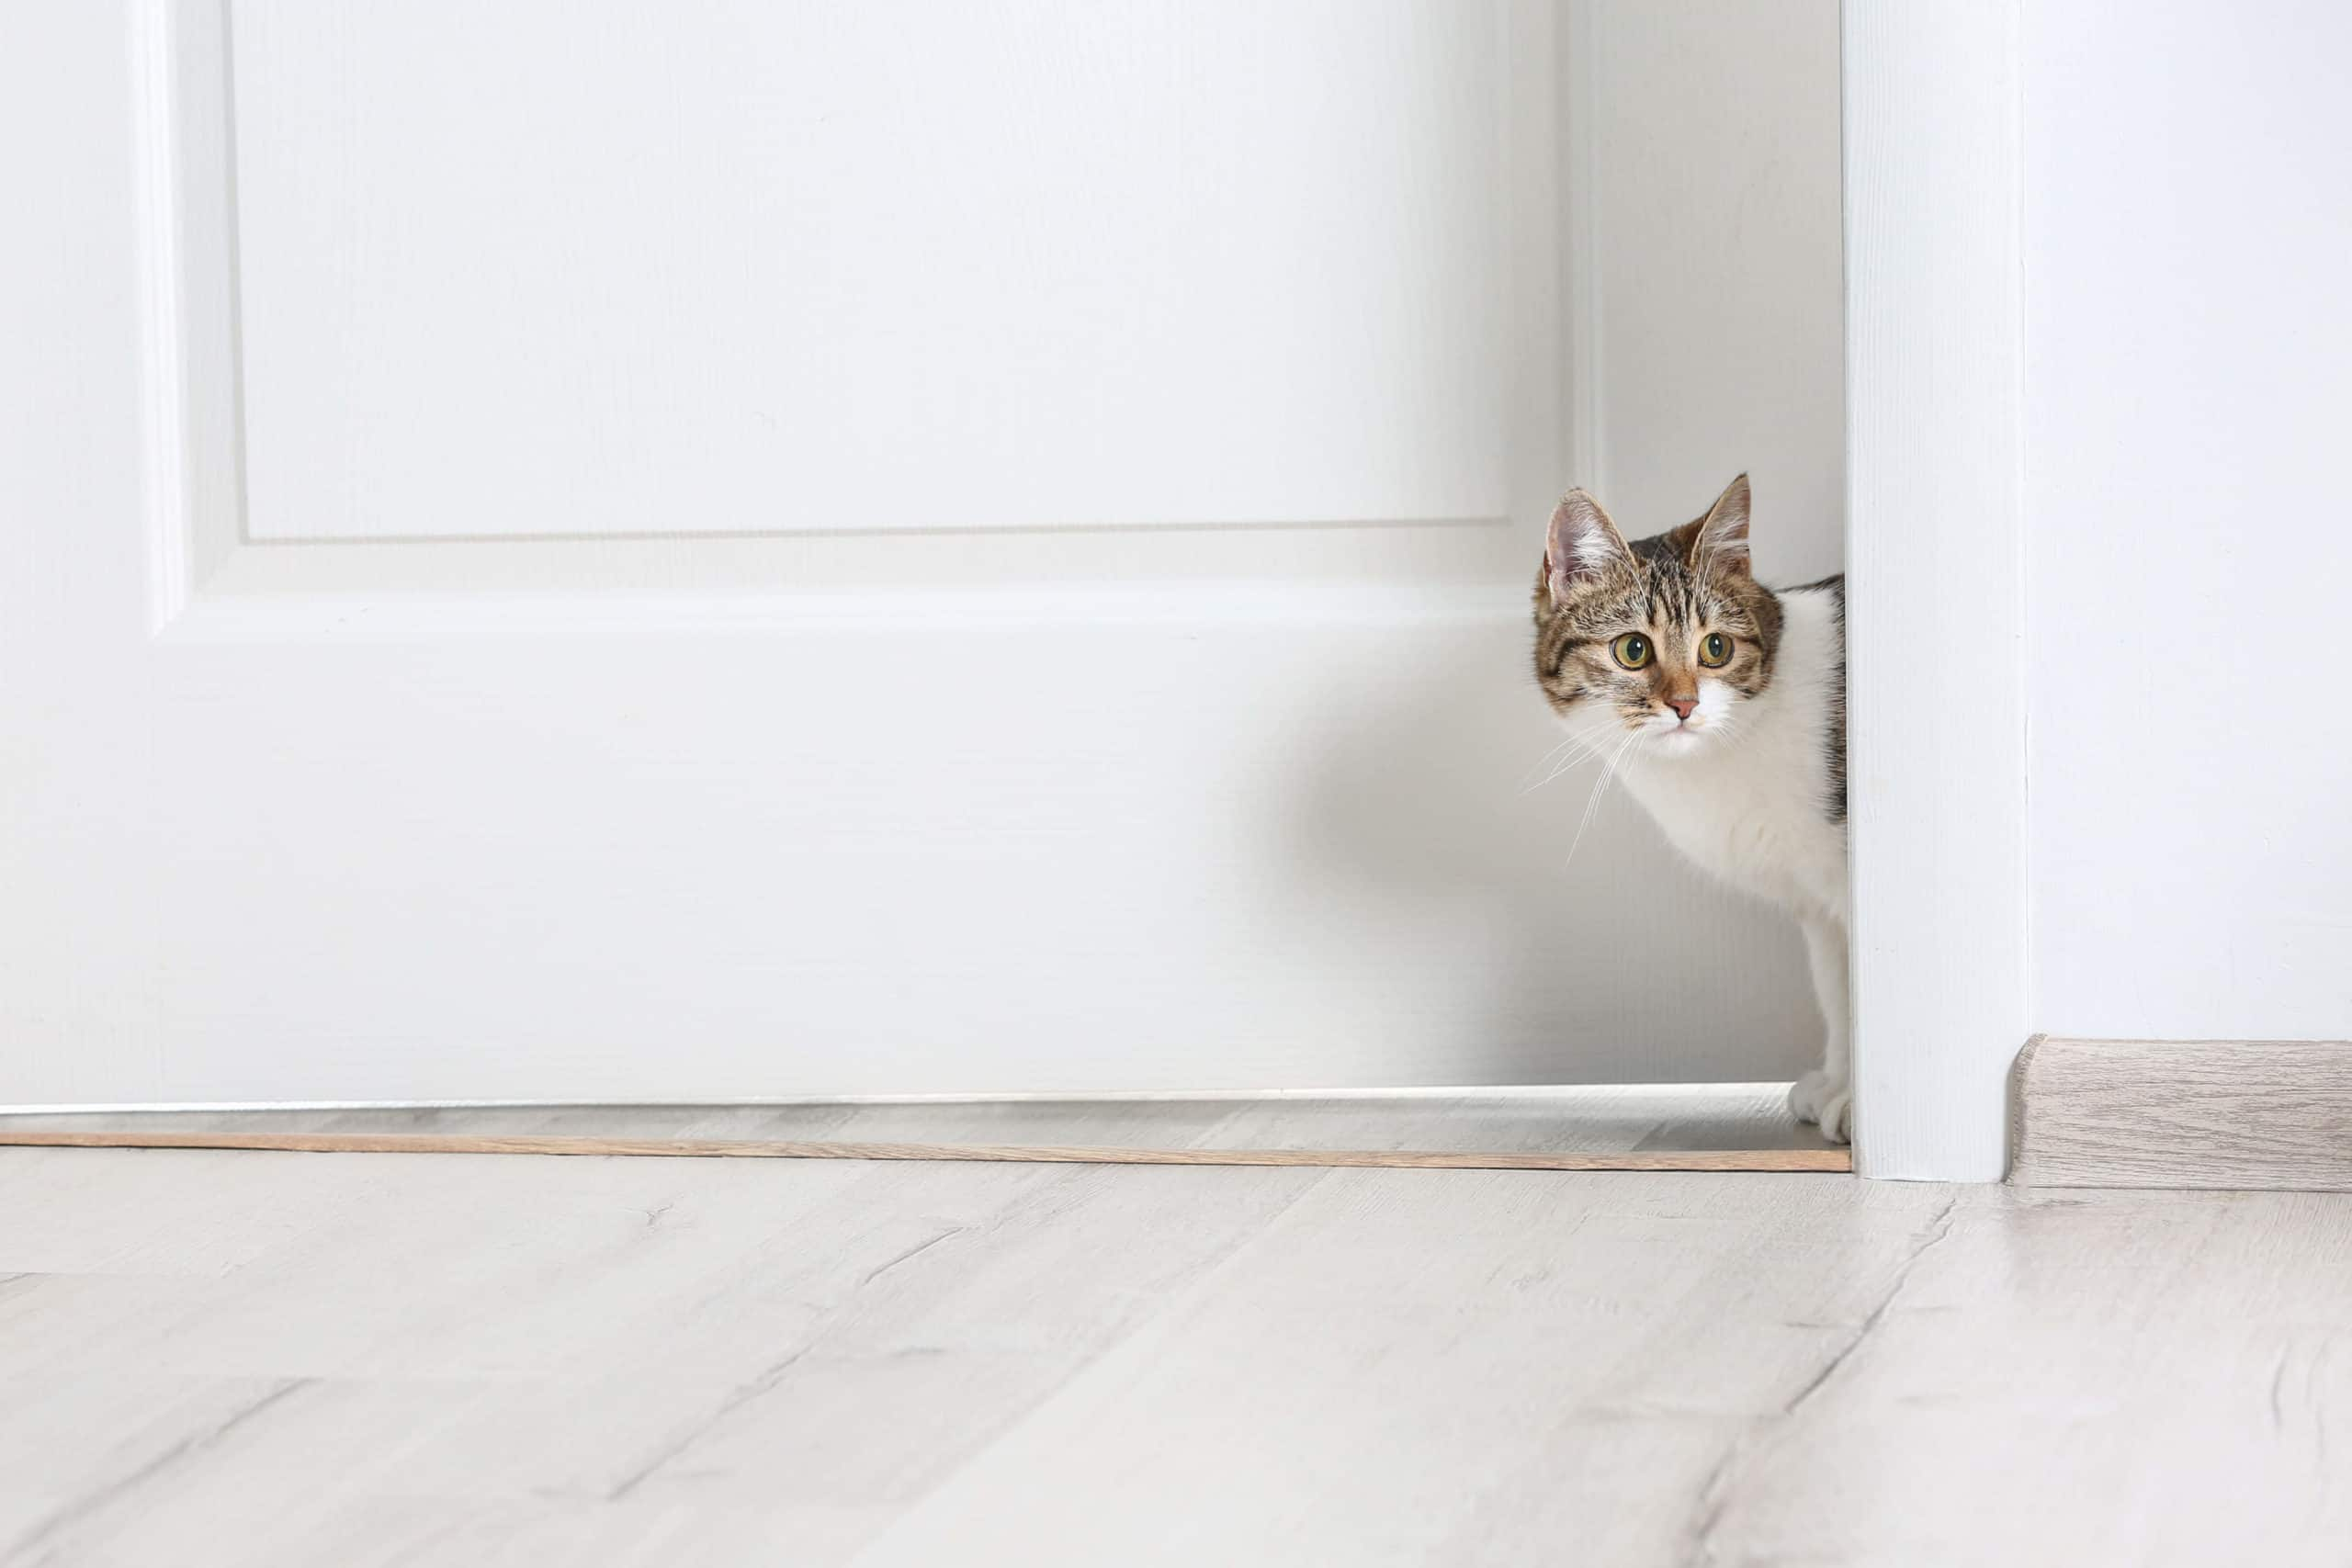 Cat sneaking out of door